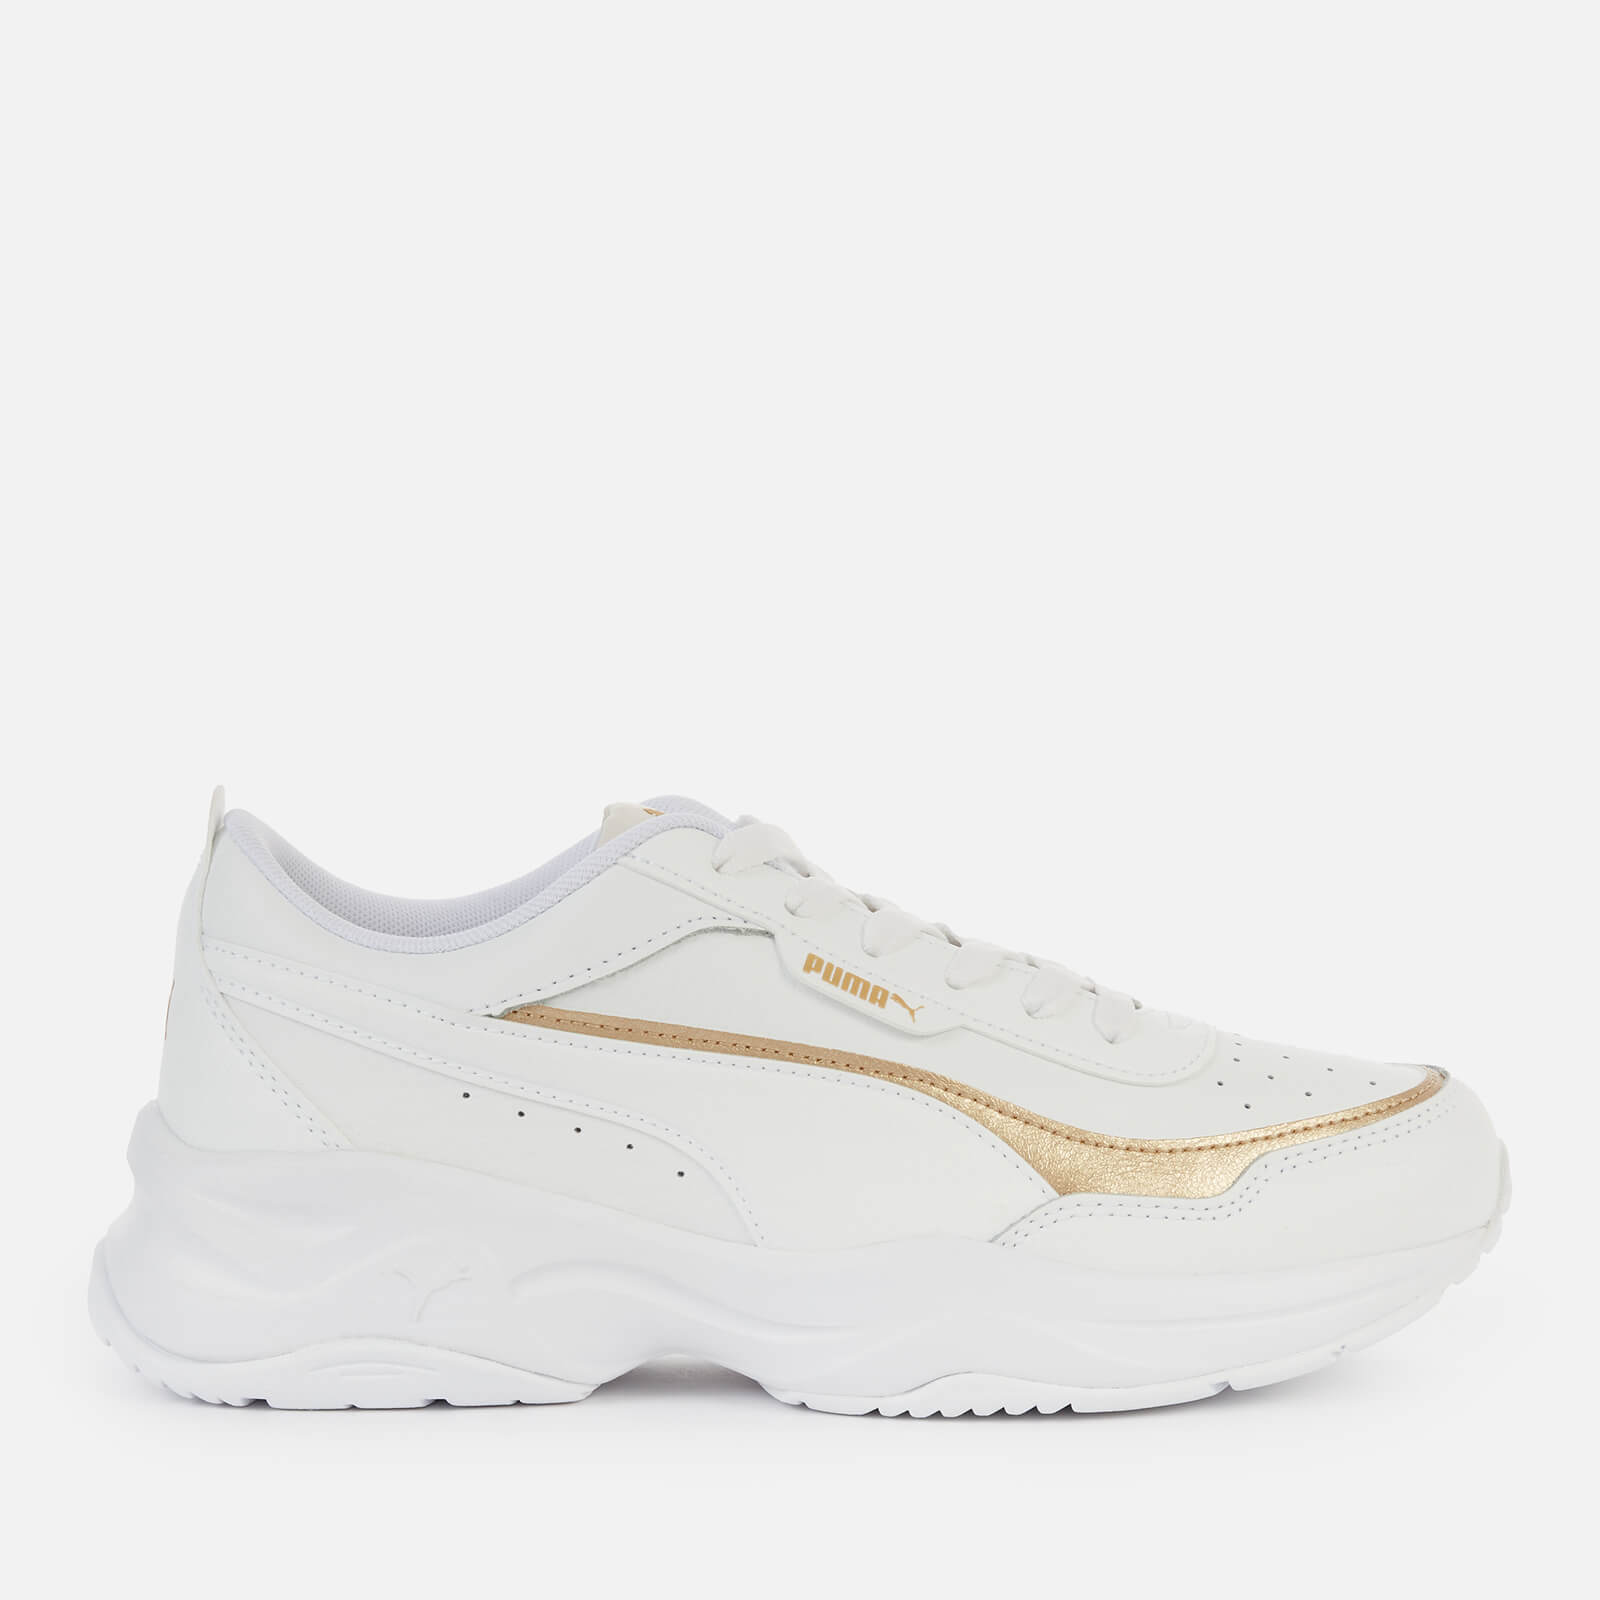 Puma Womens Cilia Mode Lux Trainers Puma White Puma White Puma Team Gold Uk 4